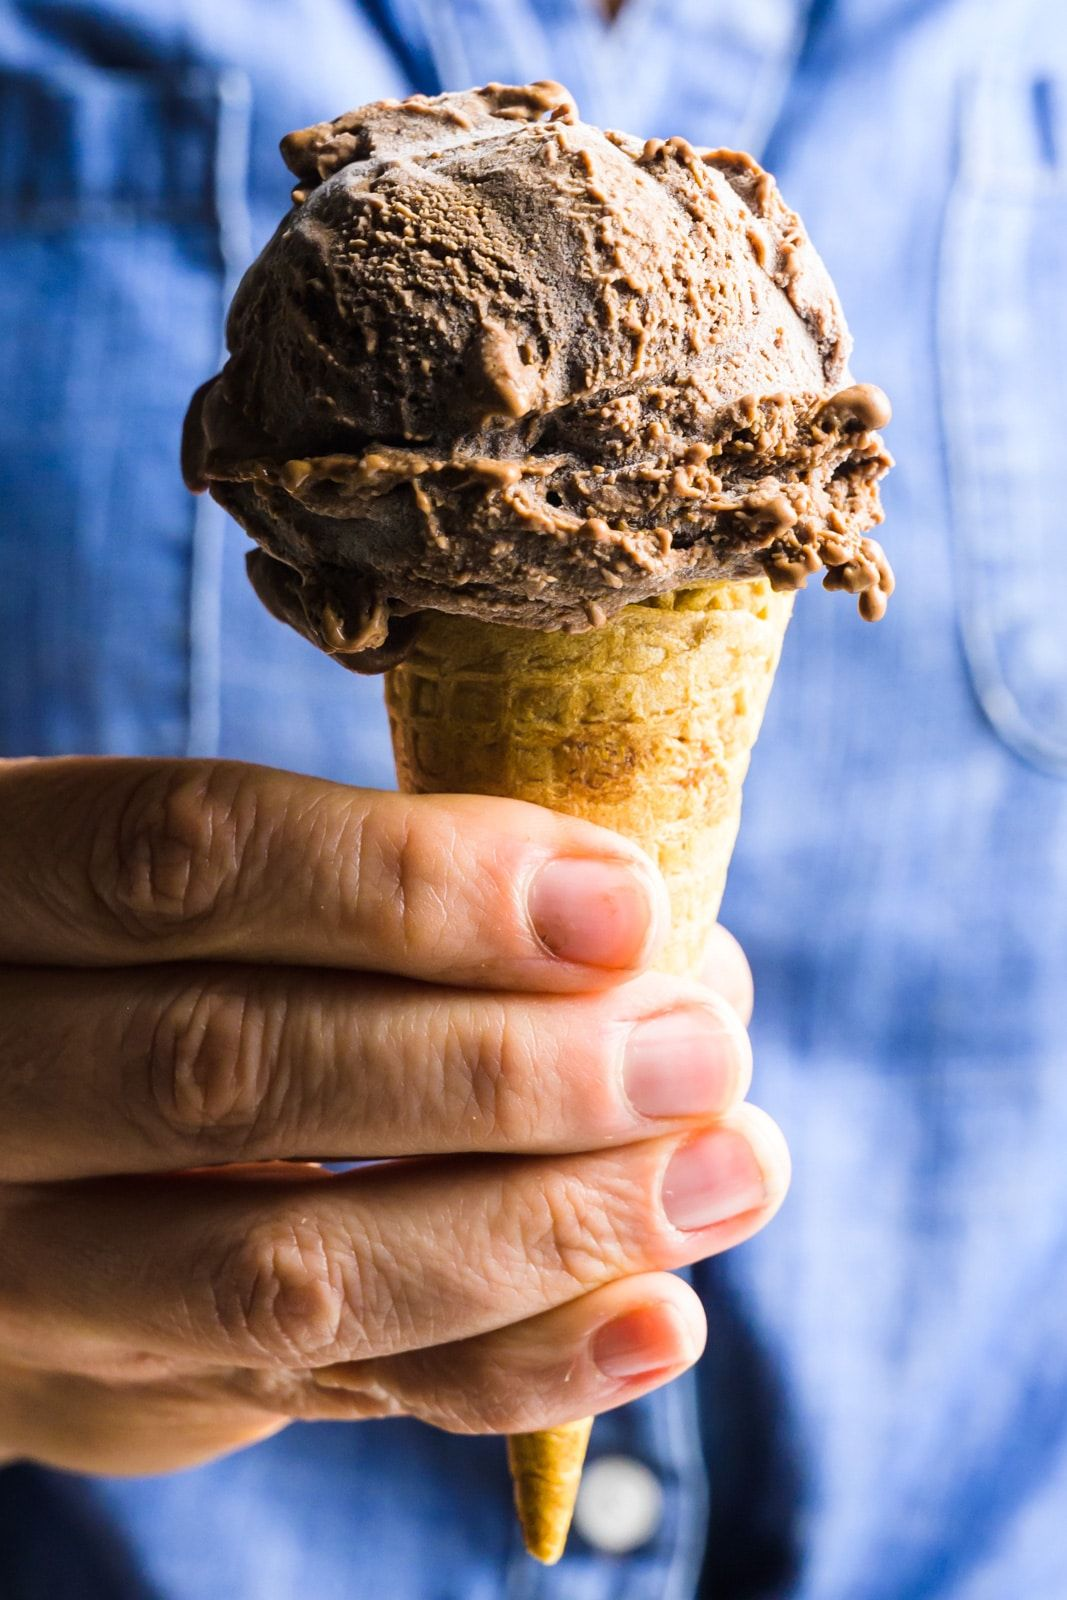 This Vegan Chocolate Ice Cream Should Is Creamy Smooth And Delicious But You L In 2020 Chocolate Ice Cream Recipe Vegan Chocolate Ice Cream Recipe Ice Cream Recipes